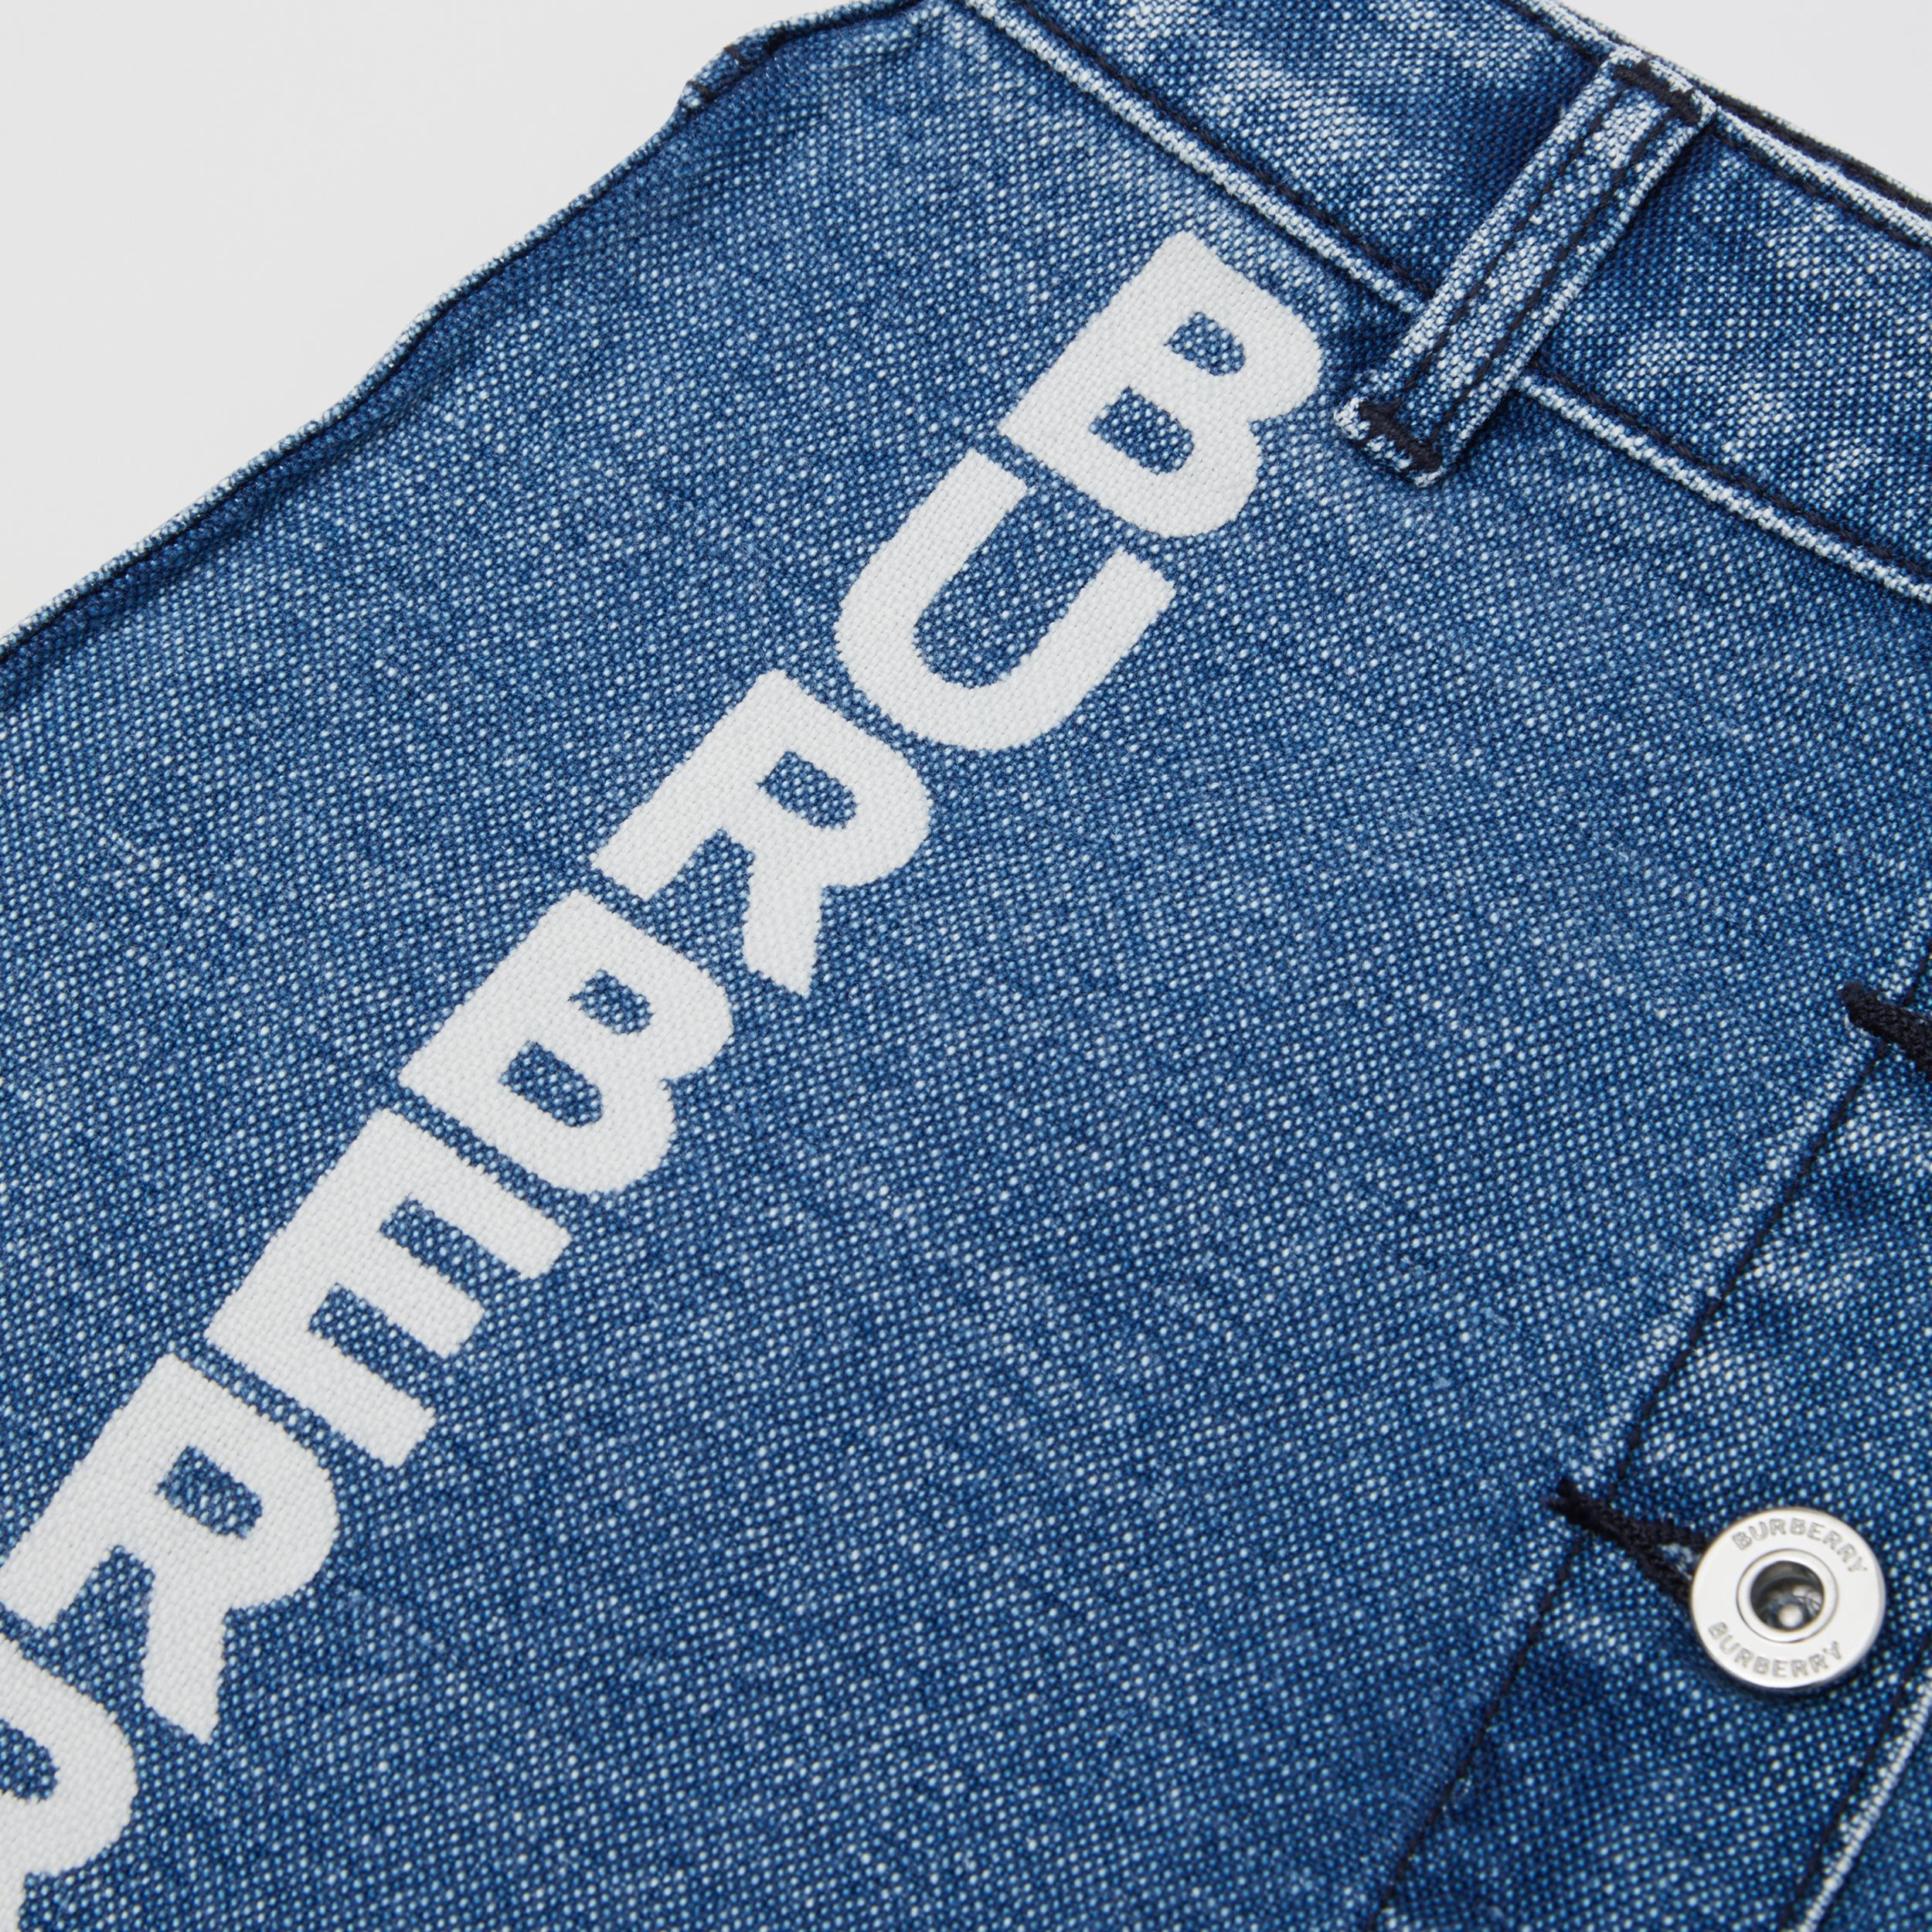 Logo Print Japanese Denim Skirt in Indigo | Burberry - 2